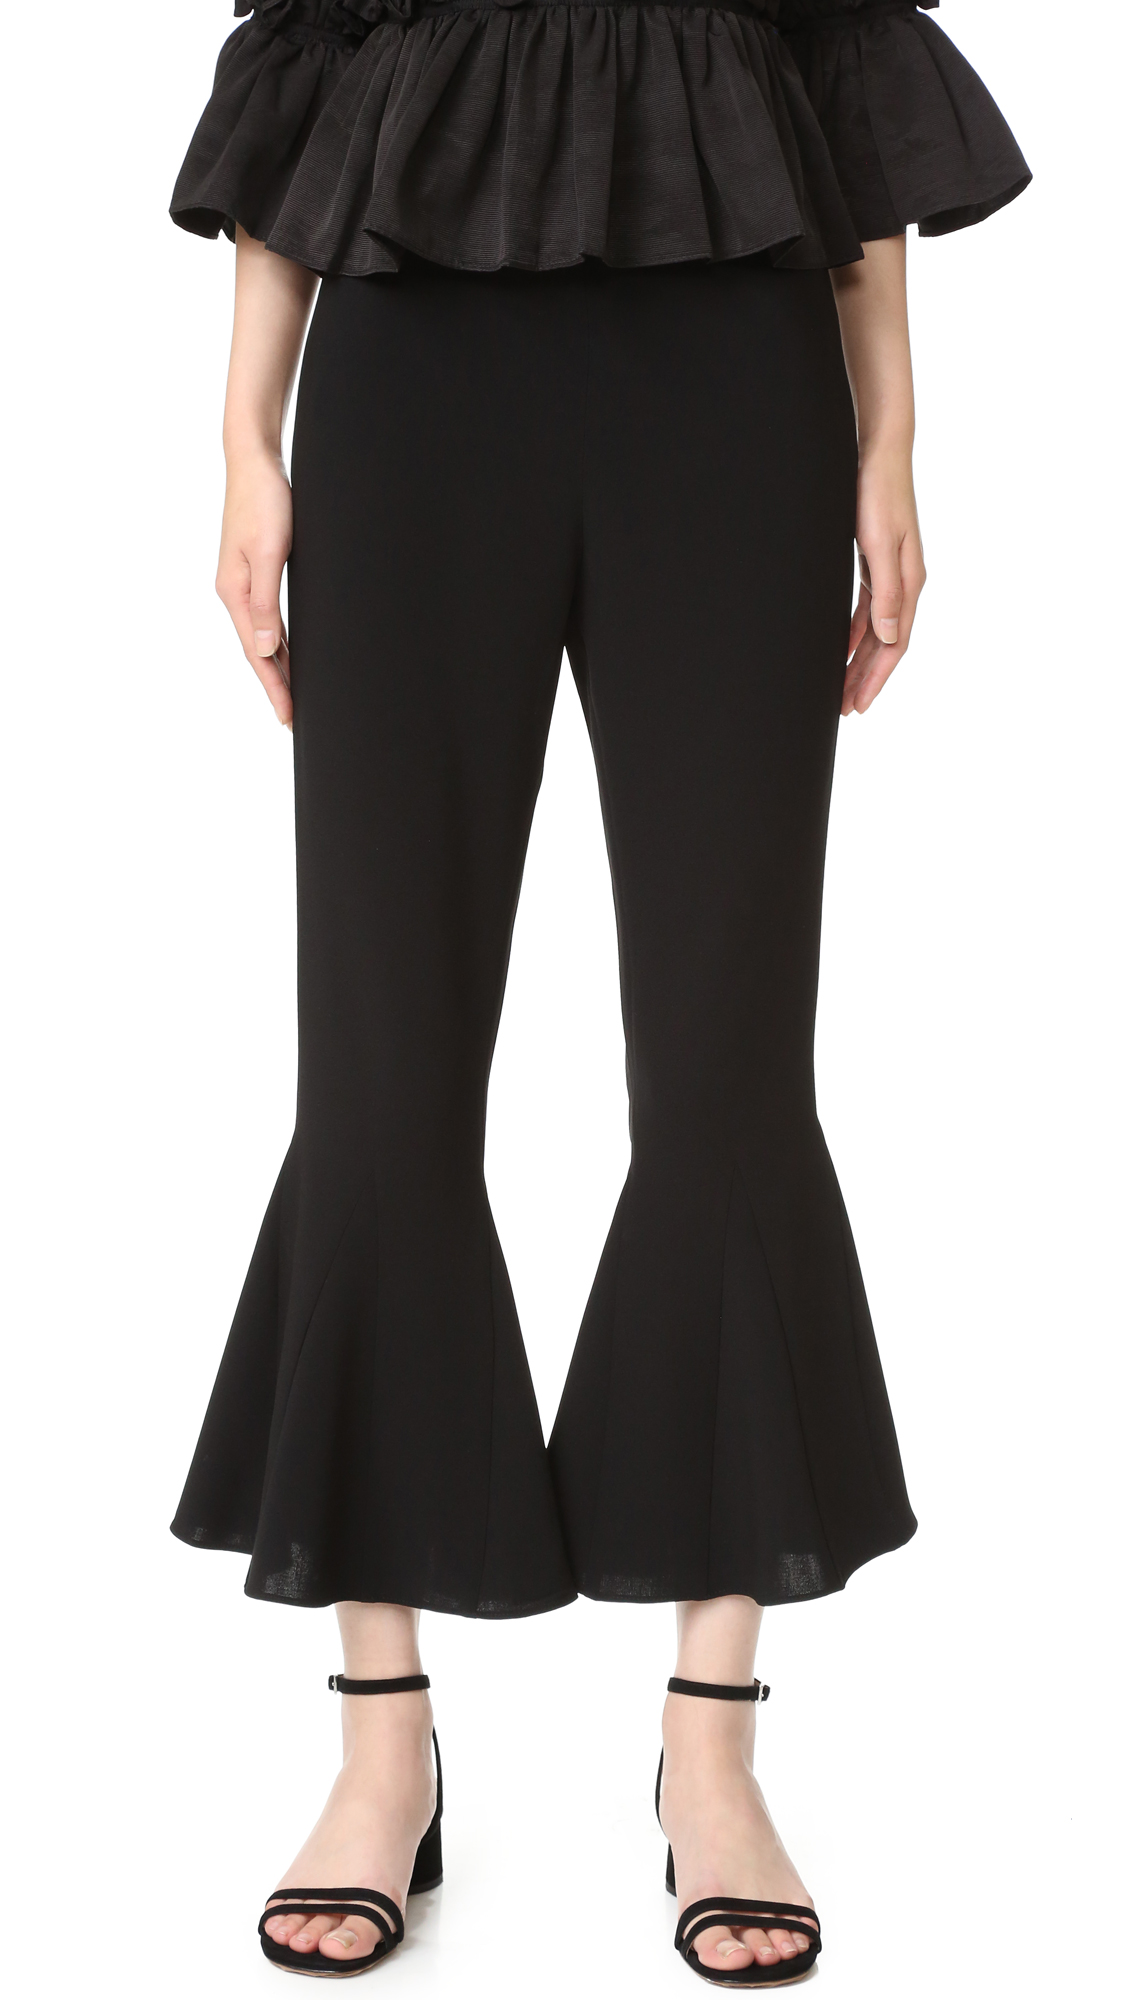 Flared cuffs lend a dramatic touch to these crepe Cinq a Sept cropped pants. Hidden side zip. Fabric: Mid weight crepe. 69% triacetate/31% polyester. Dry clean. Imported, China. Measurements Rise: 11in / 28cm Inseam: 25.25in / 64cm Leg opening: 33